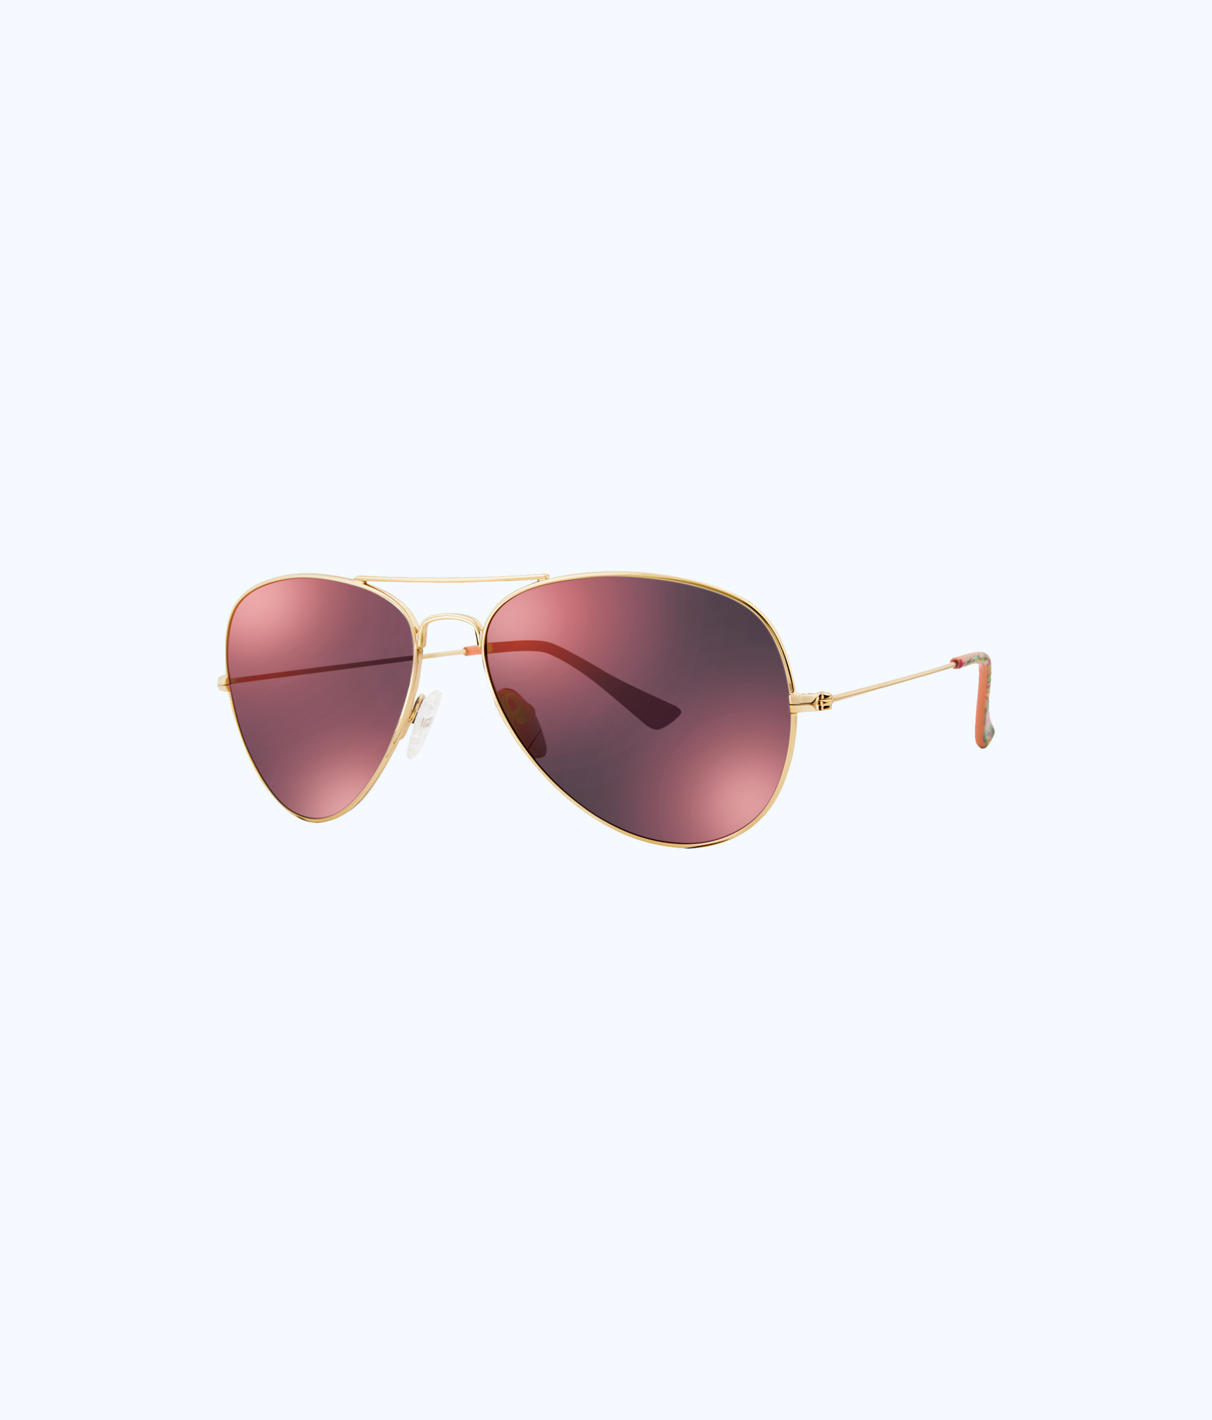 Lilly Pulitzer Lilly Pulitzer Lexy Sunglasses